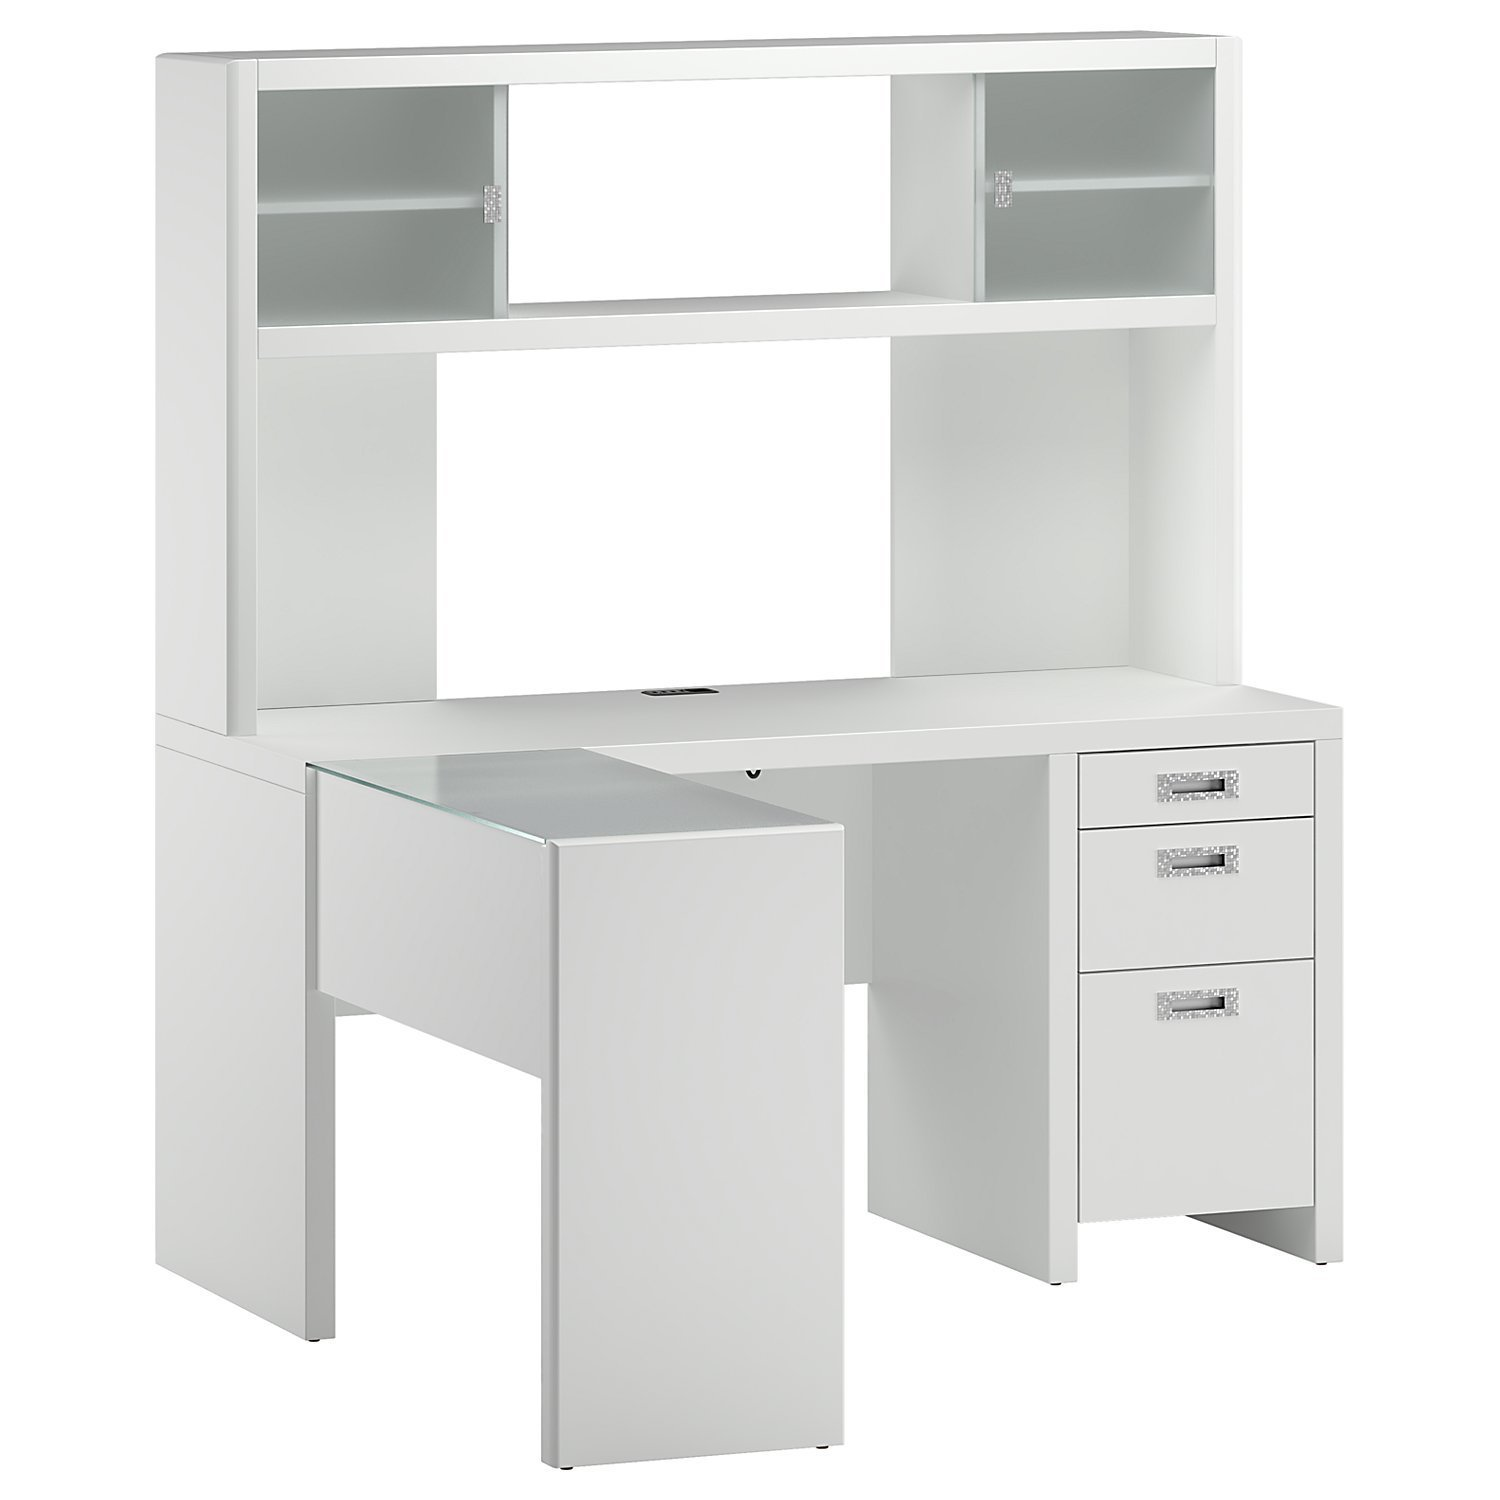 Total Fab: White & Black L-Shaped Computer Desks with Hutch